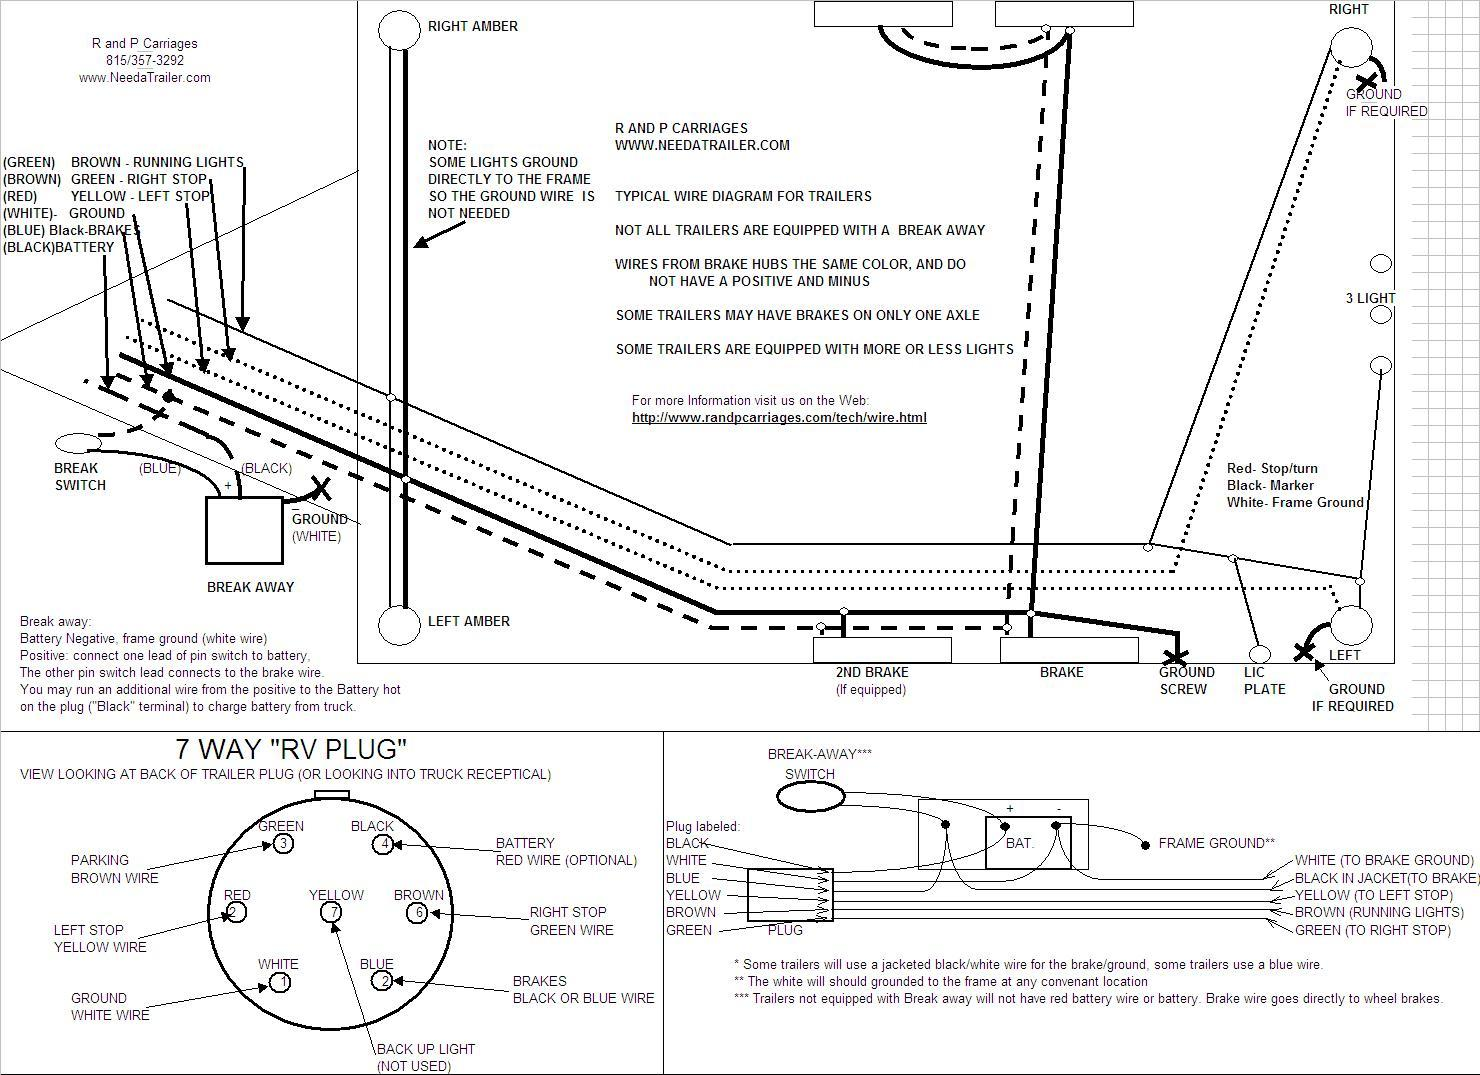 7 way wiring diagram brake controller installation instructions 4 way wiring diagram for trailer lights at soozxer.org